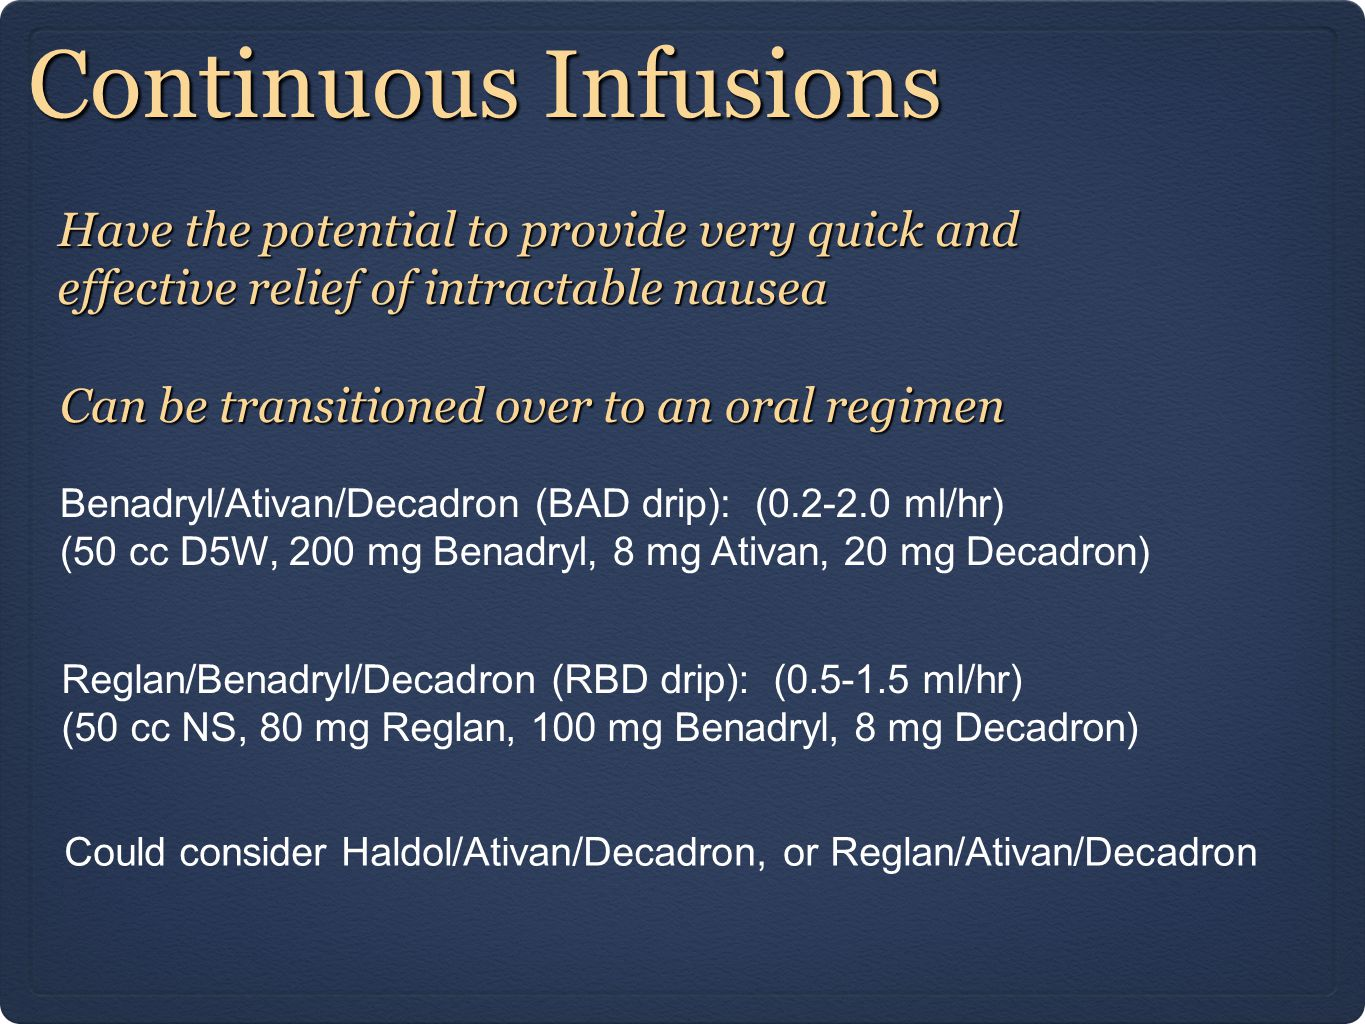 Continuous Infusions Have the potential to provide very quick and effective relief of intractable nausea Benadryl/Ativan/Decadron (BAD drip): (0.2-2.0